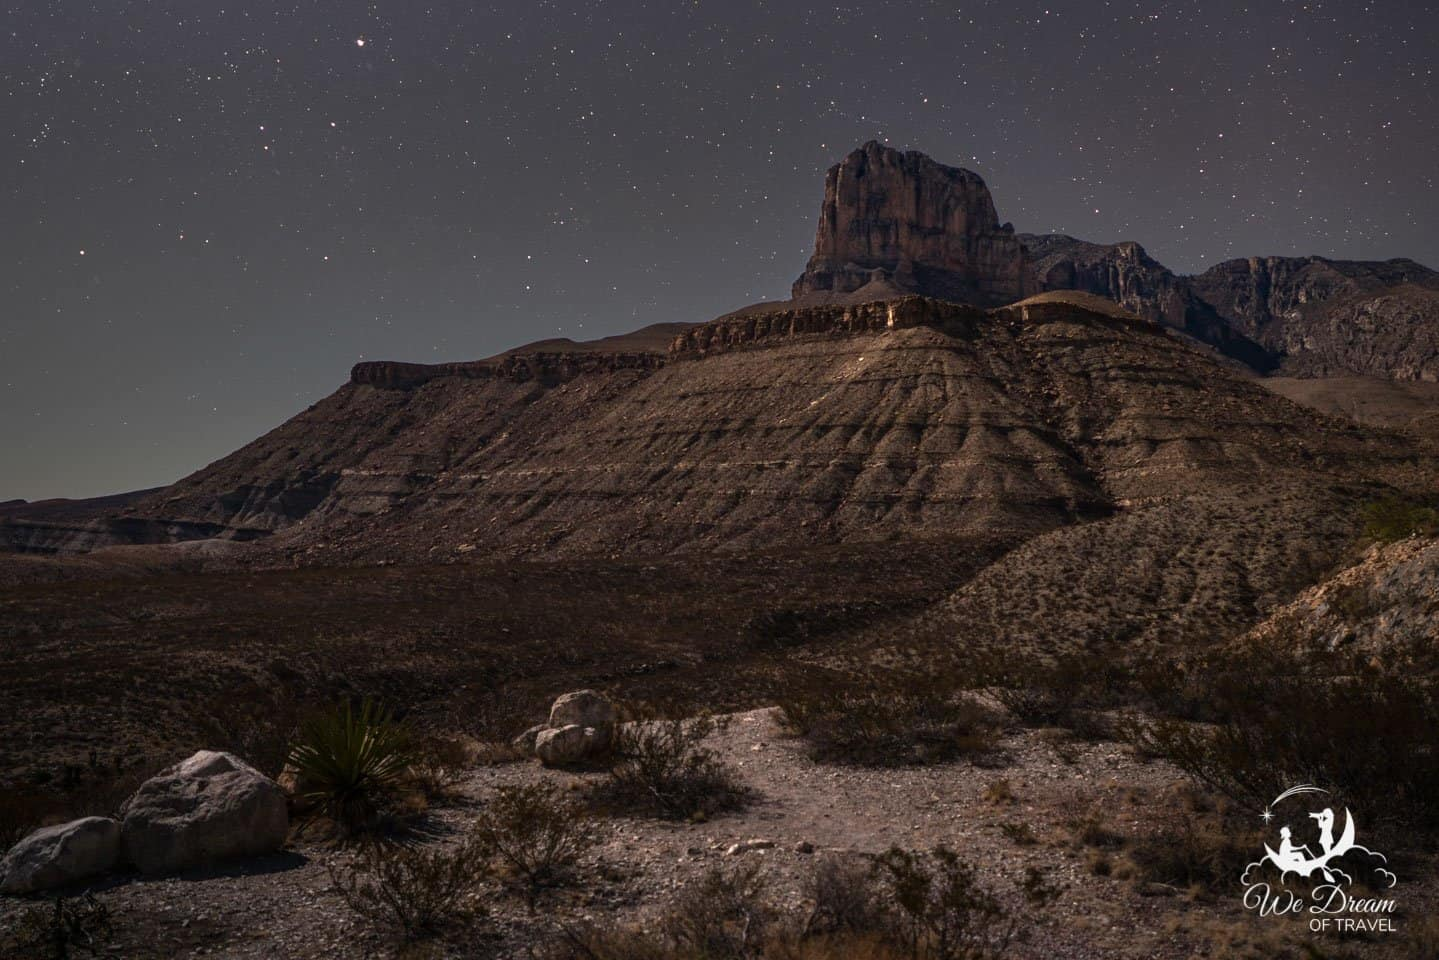 Doing some night photography on a moonlit night at Guadalupe Mountains National Park.